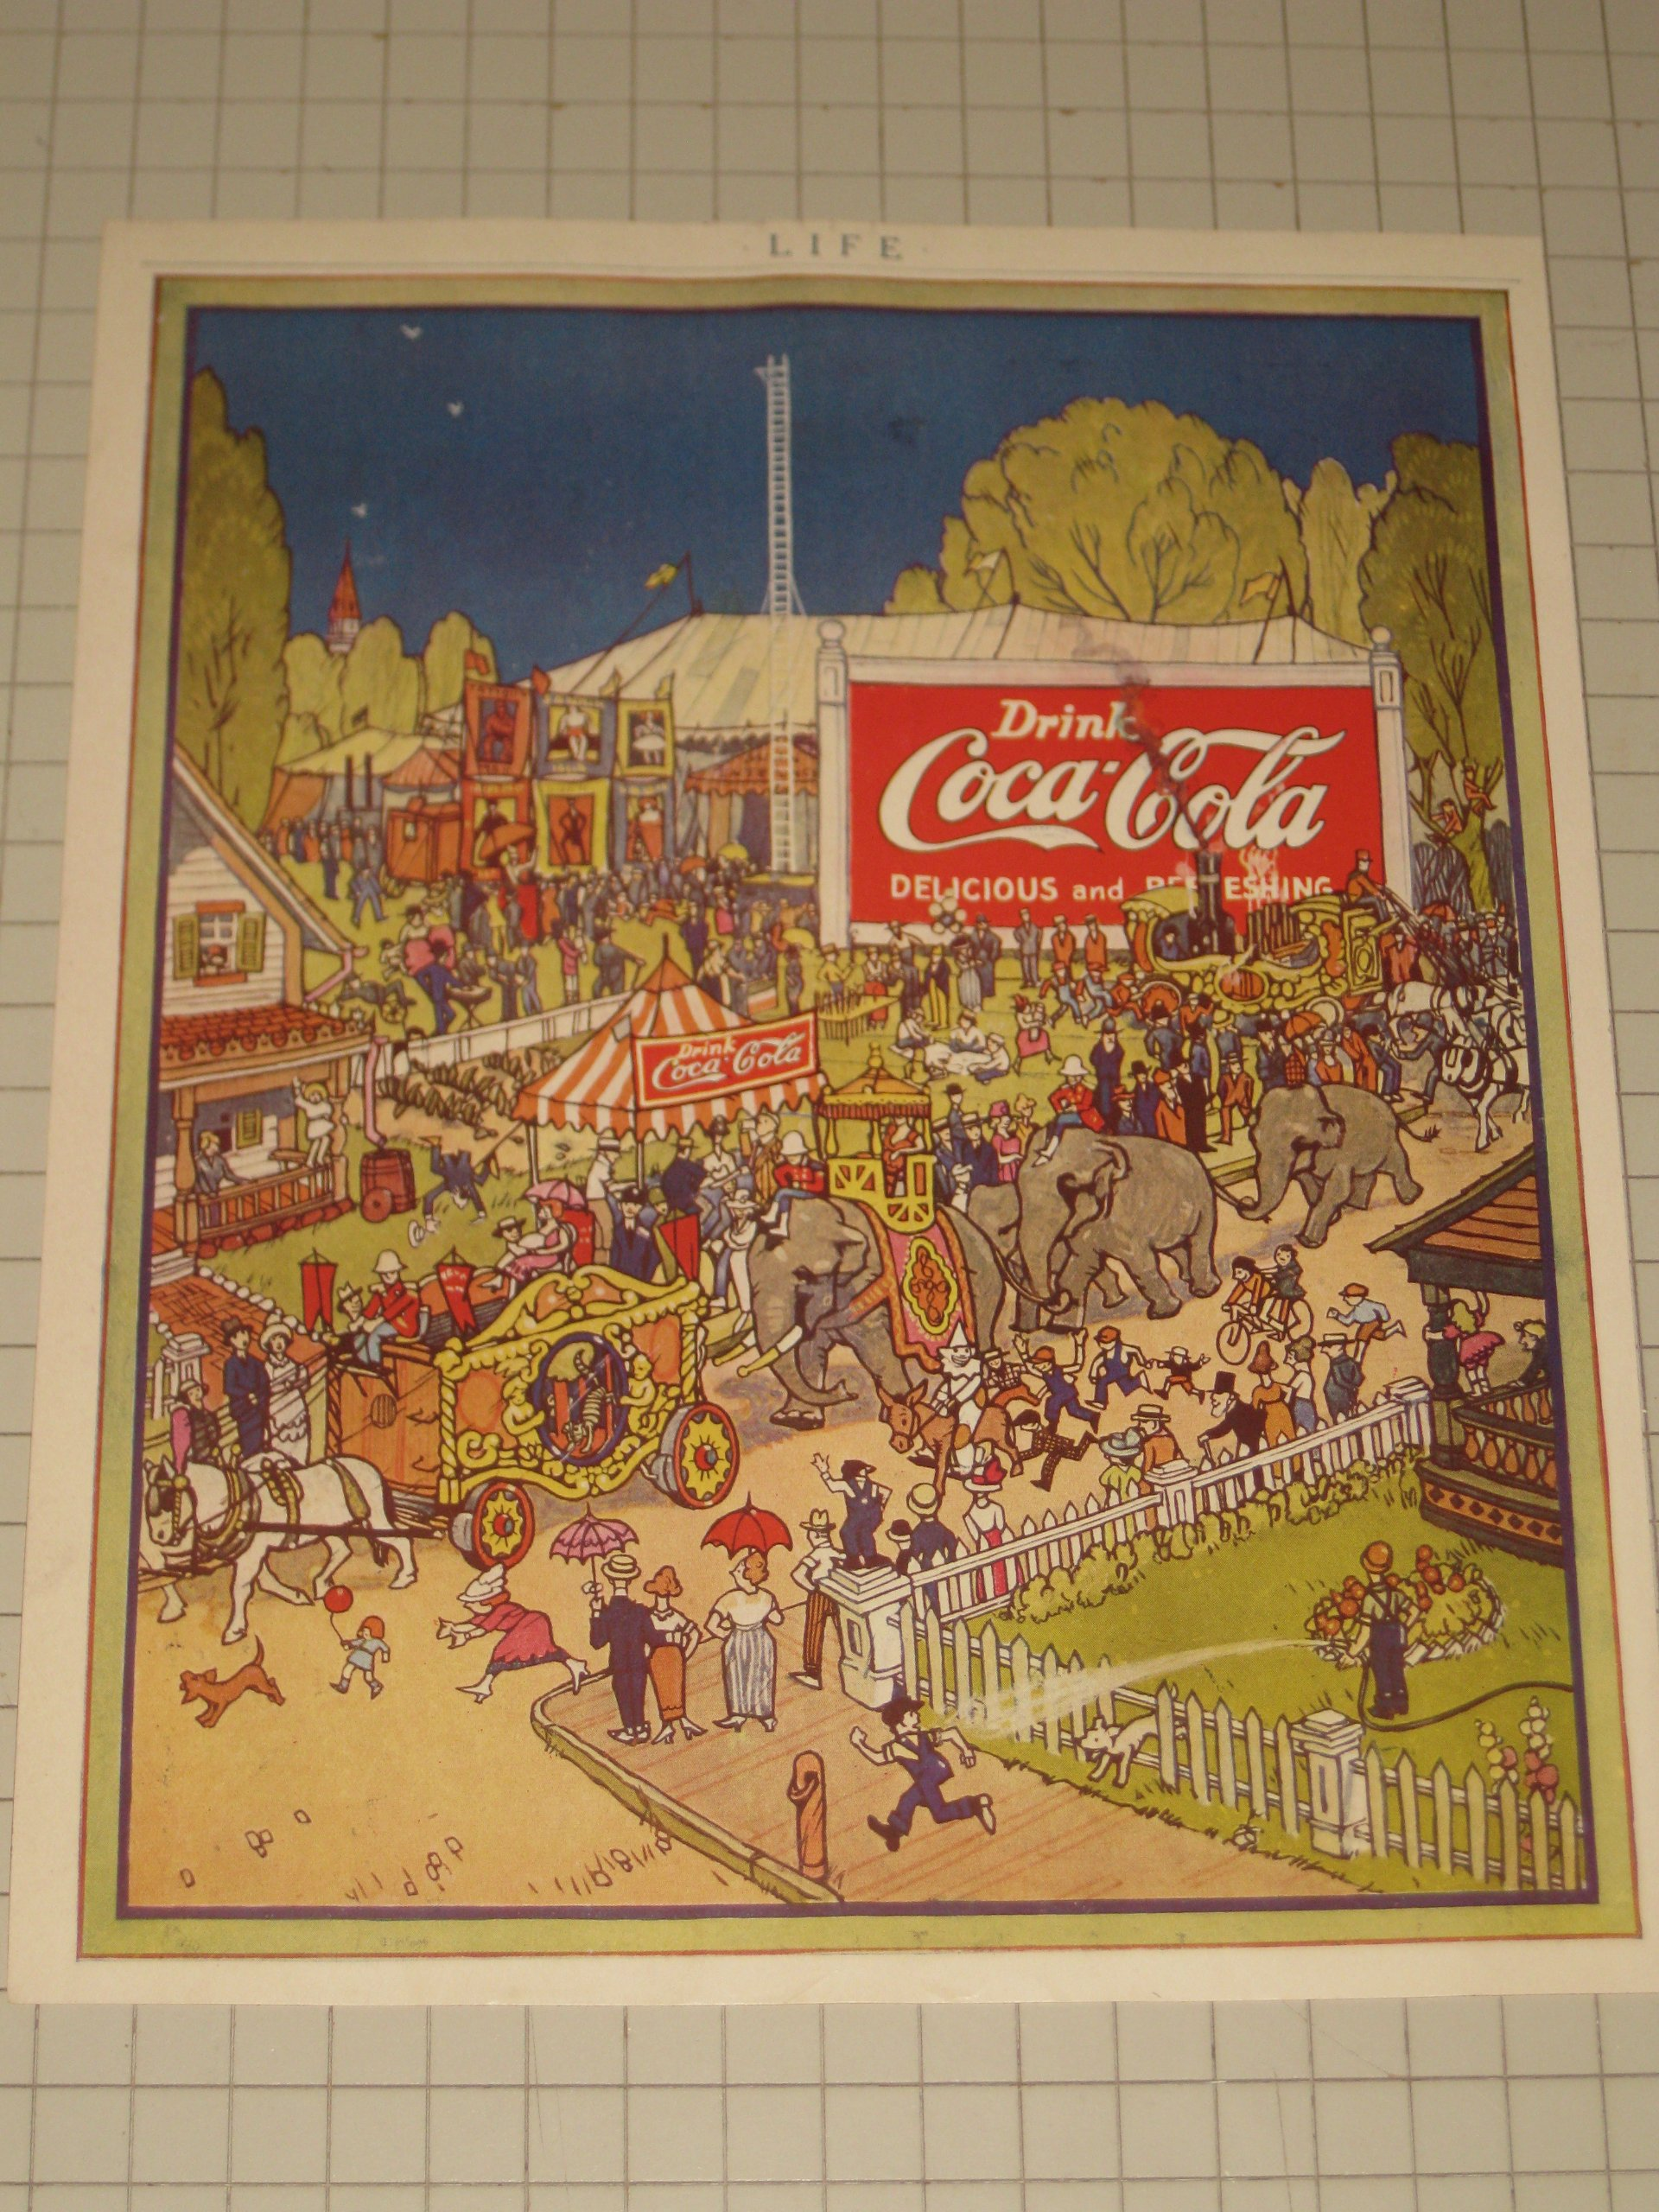 1920 Coca Cola Ad (Coke) The Circus Comes To Town: n/a